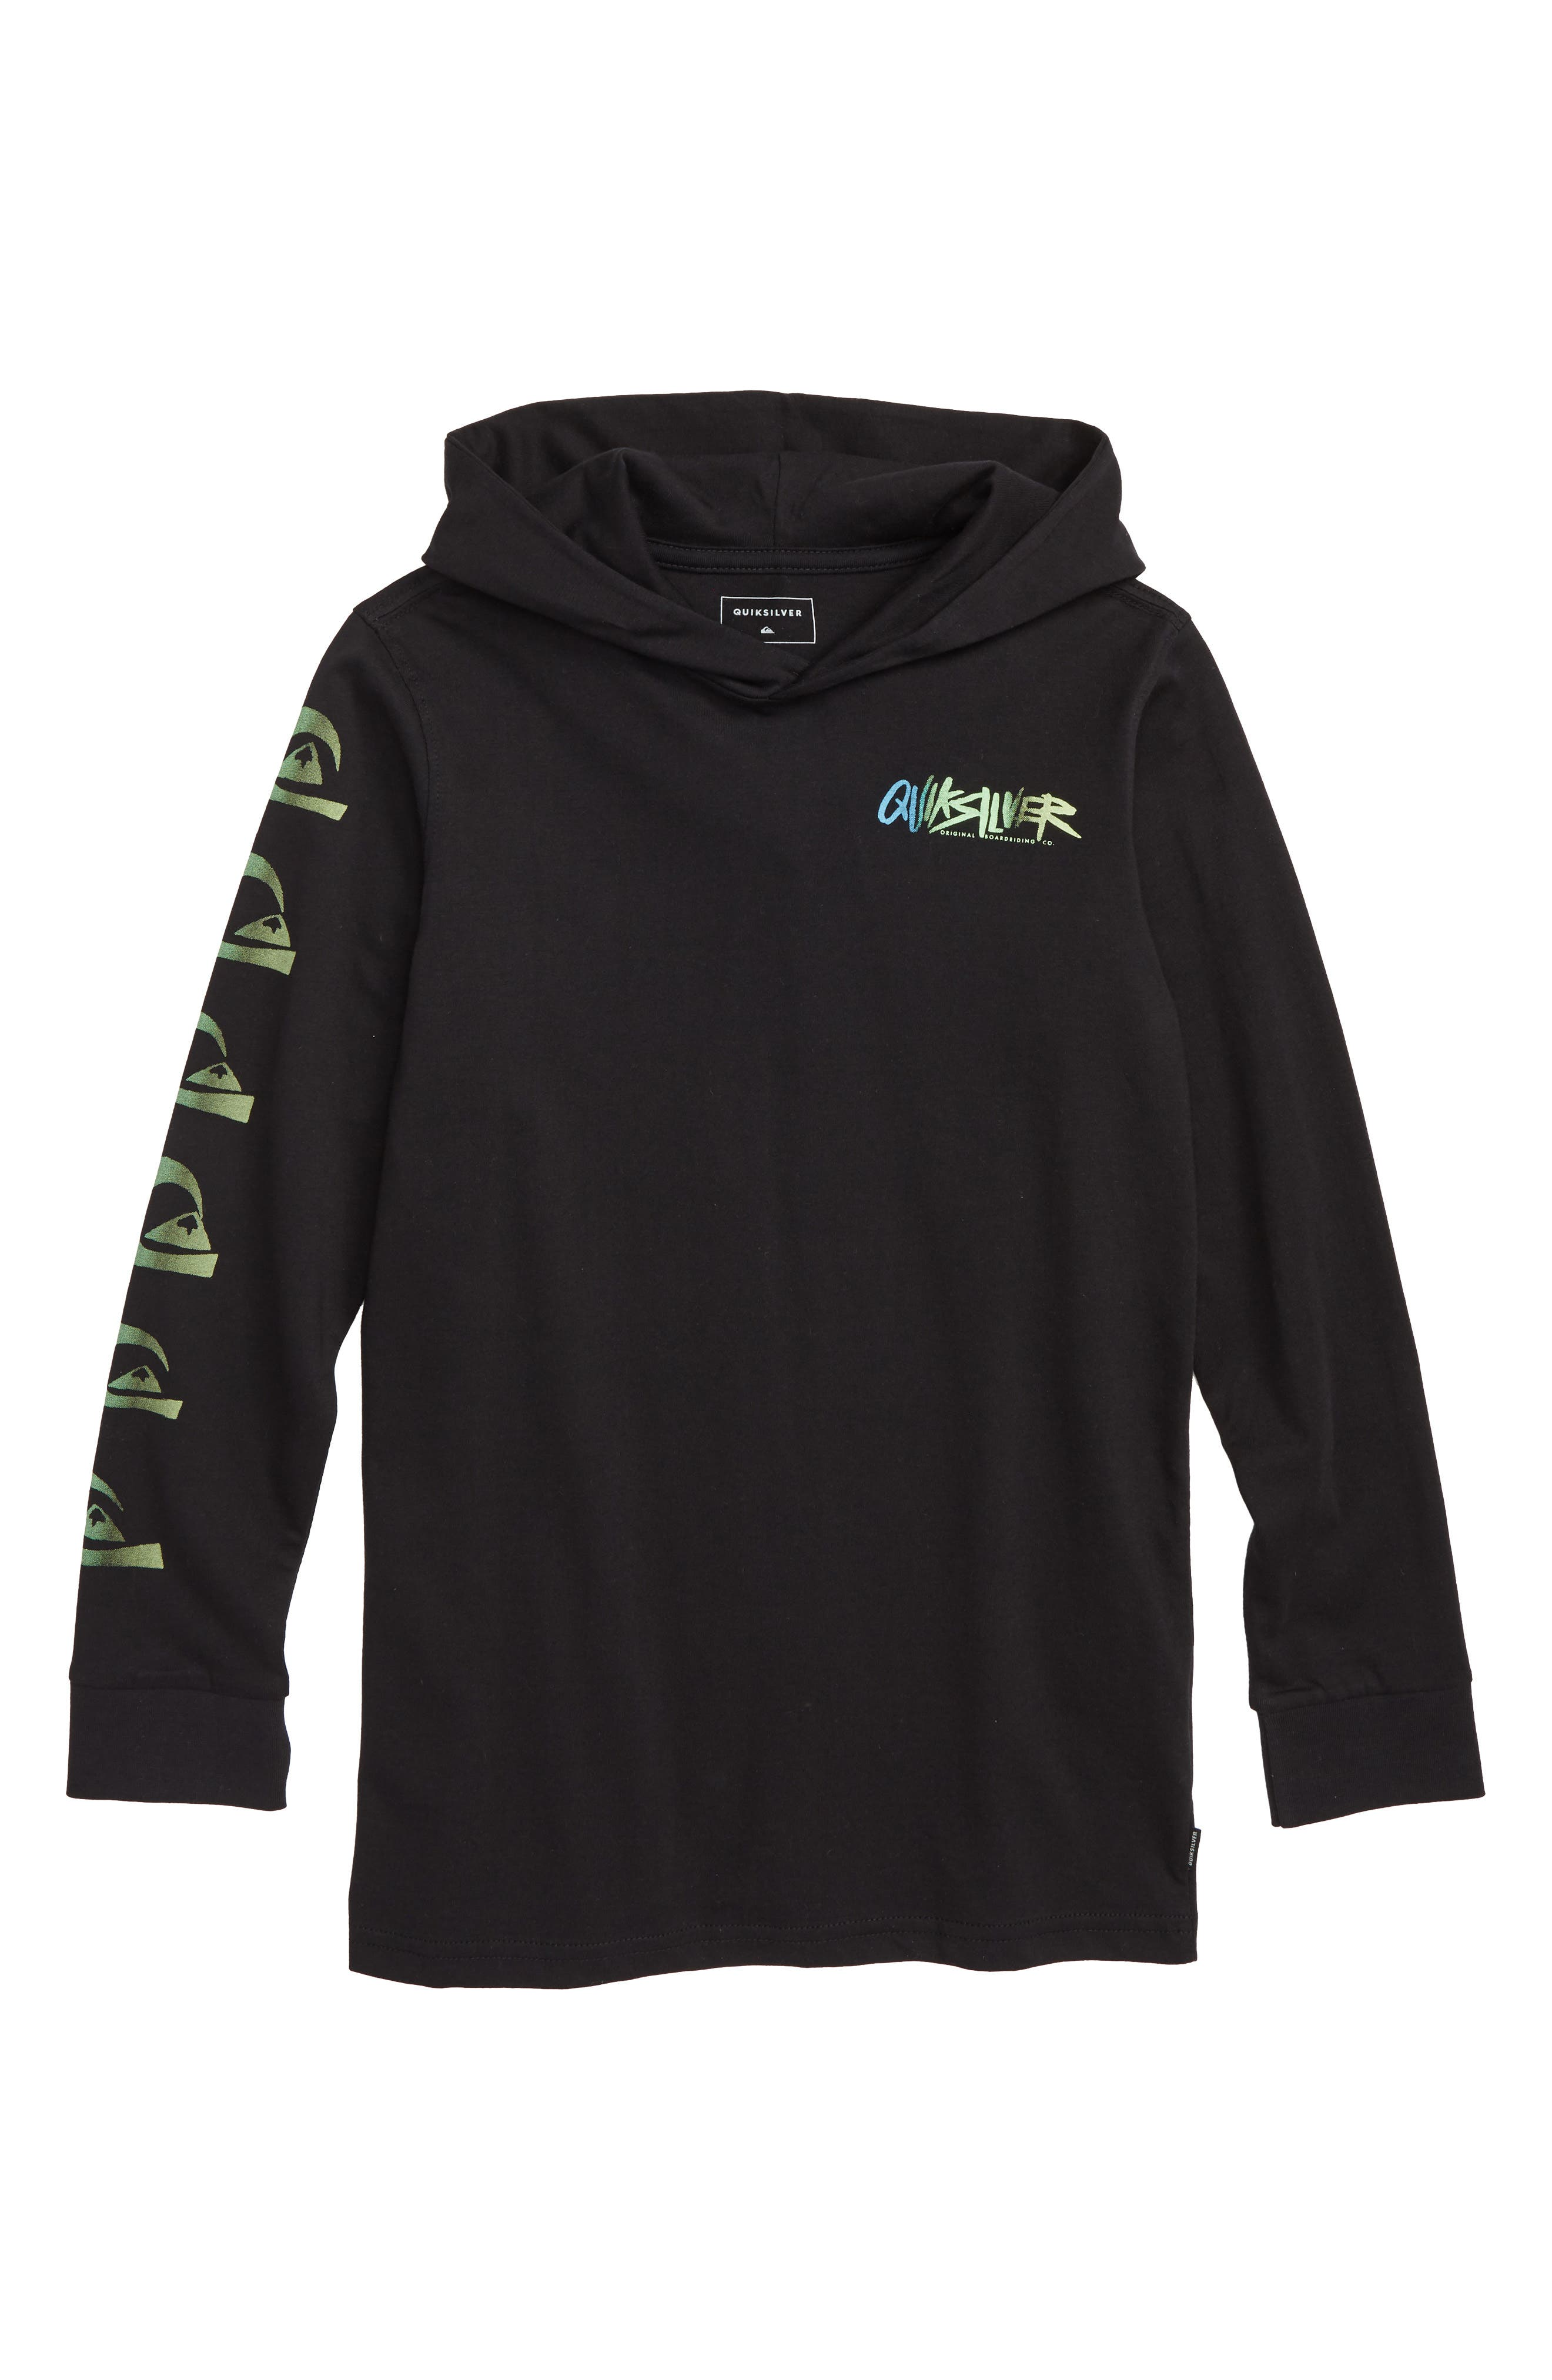 QUIKSILVER Rough Right Hoodie, Main, color, 002